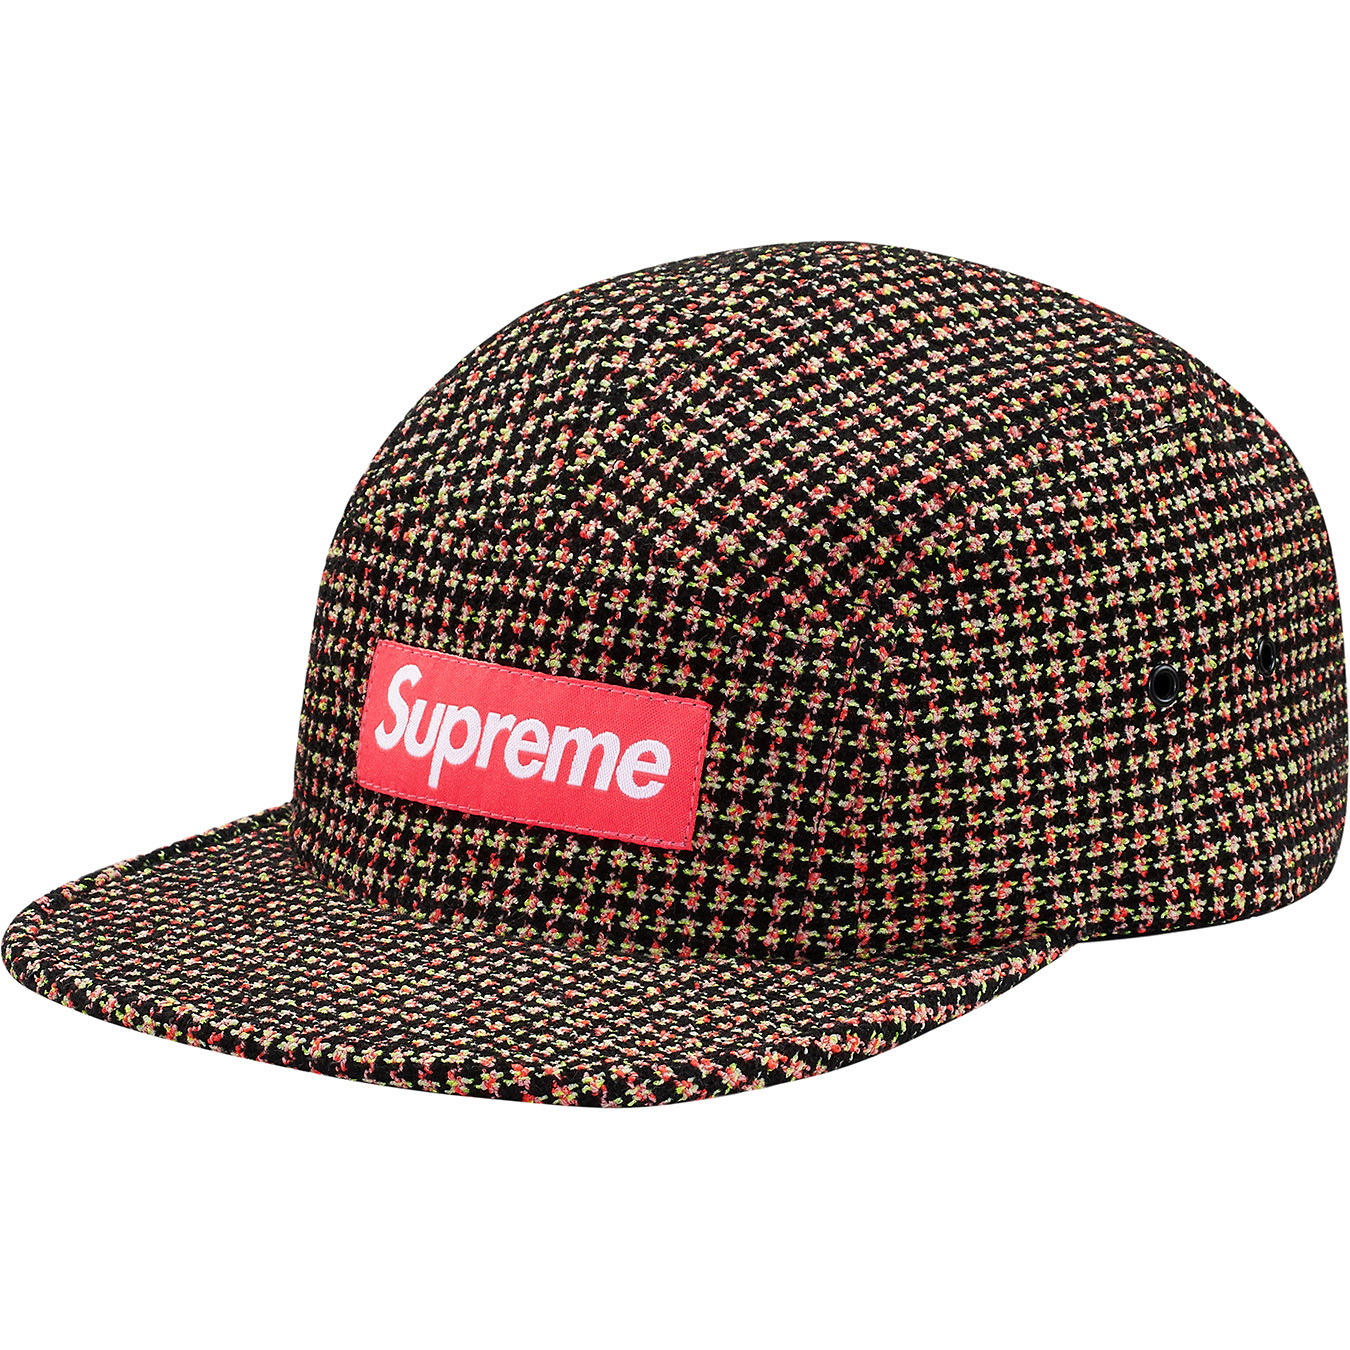 supreme-2017aw-fall-winter-boucle-houndstooth-camp-cap